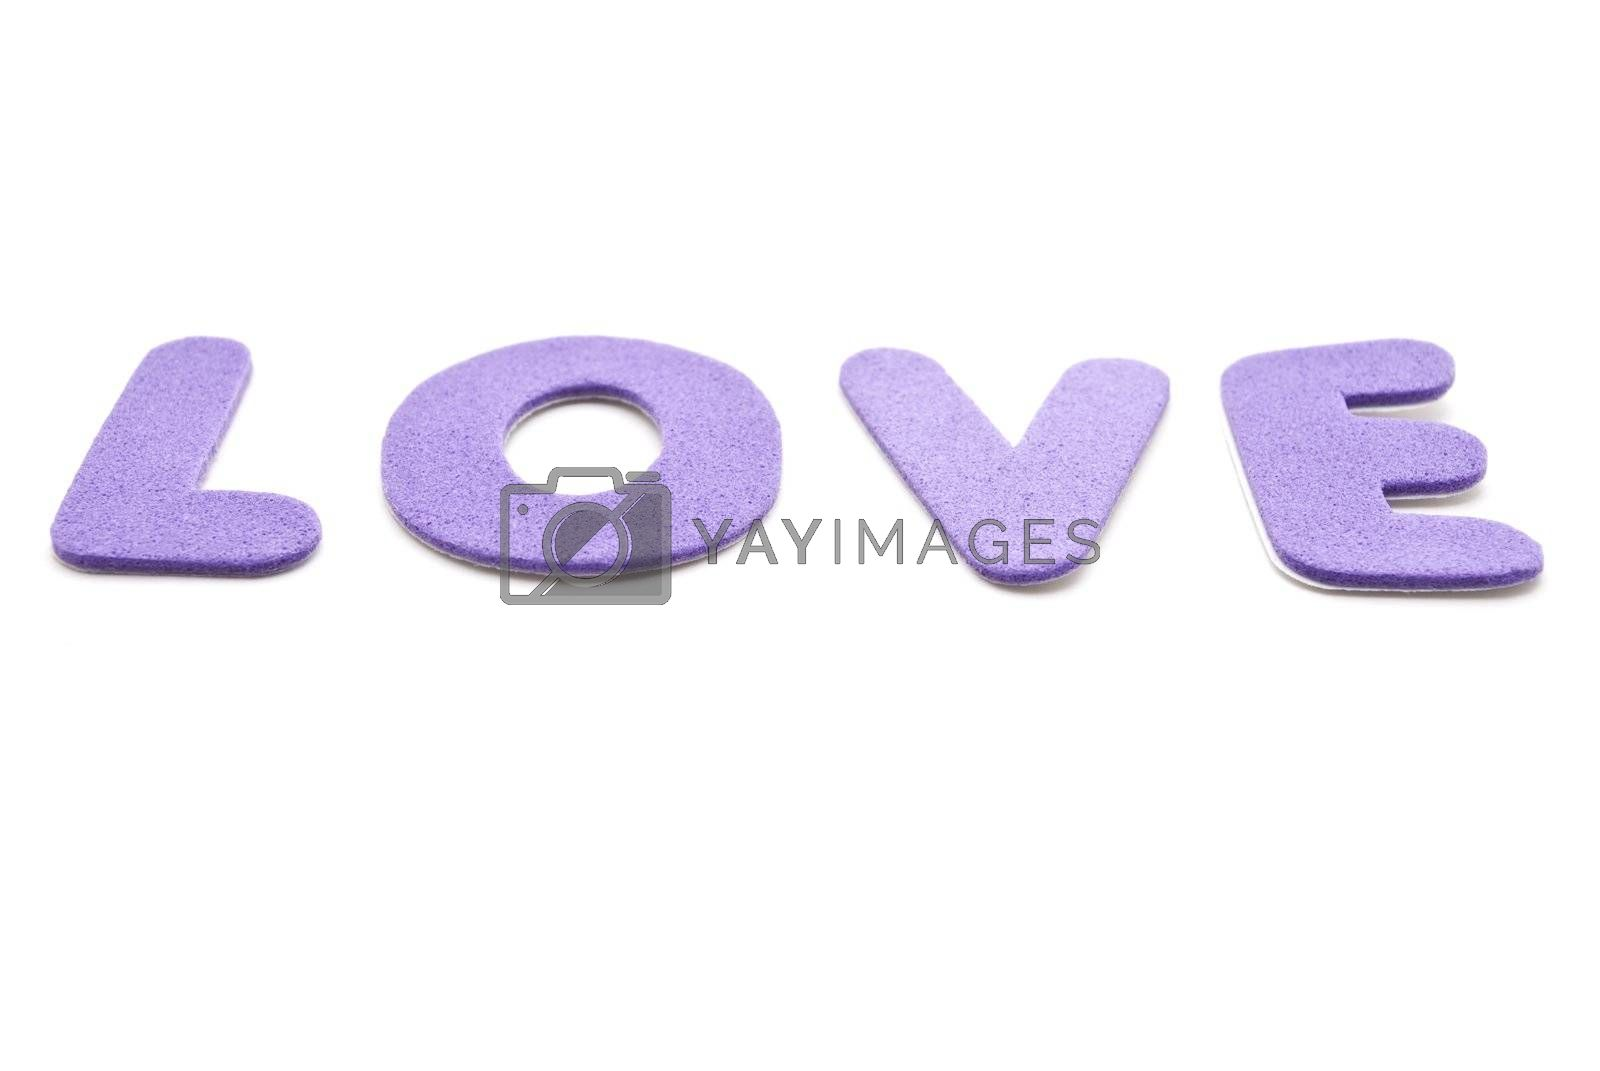 The word 'Love' spelled out in mauve lettering  on a white background.